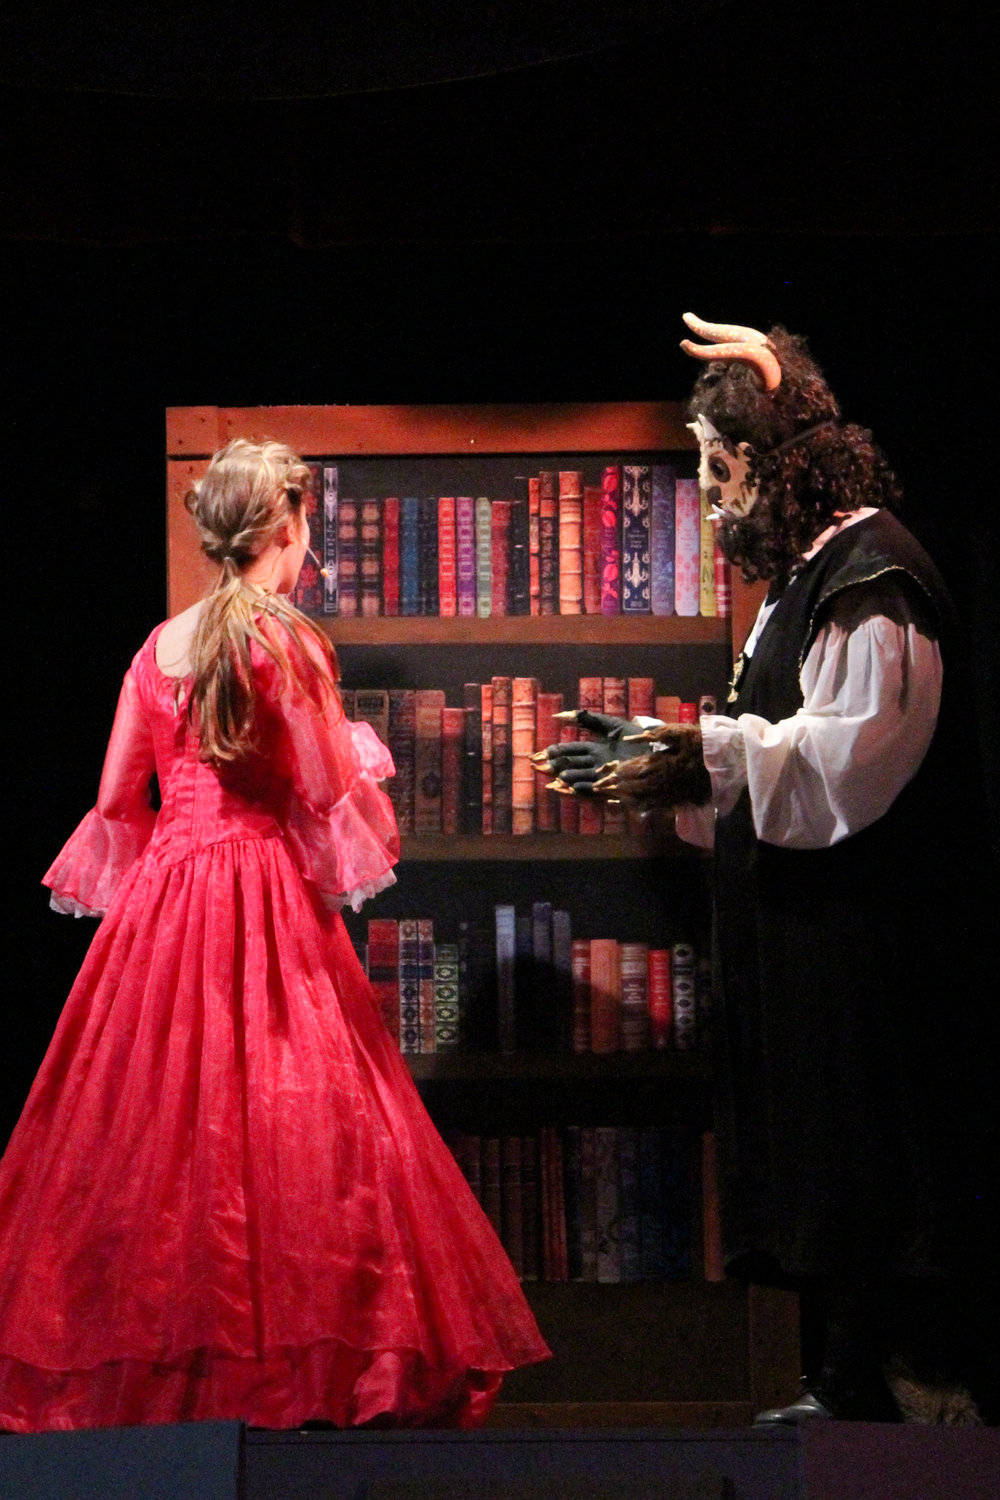 After sharing a romantic evening dance together Beast ( Remington Slater, junior ) shows Belle ( Emily Powell, senior ) his extensive library.